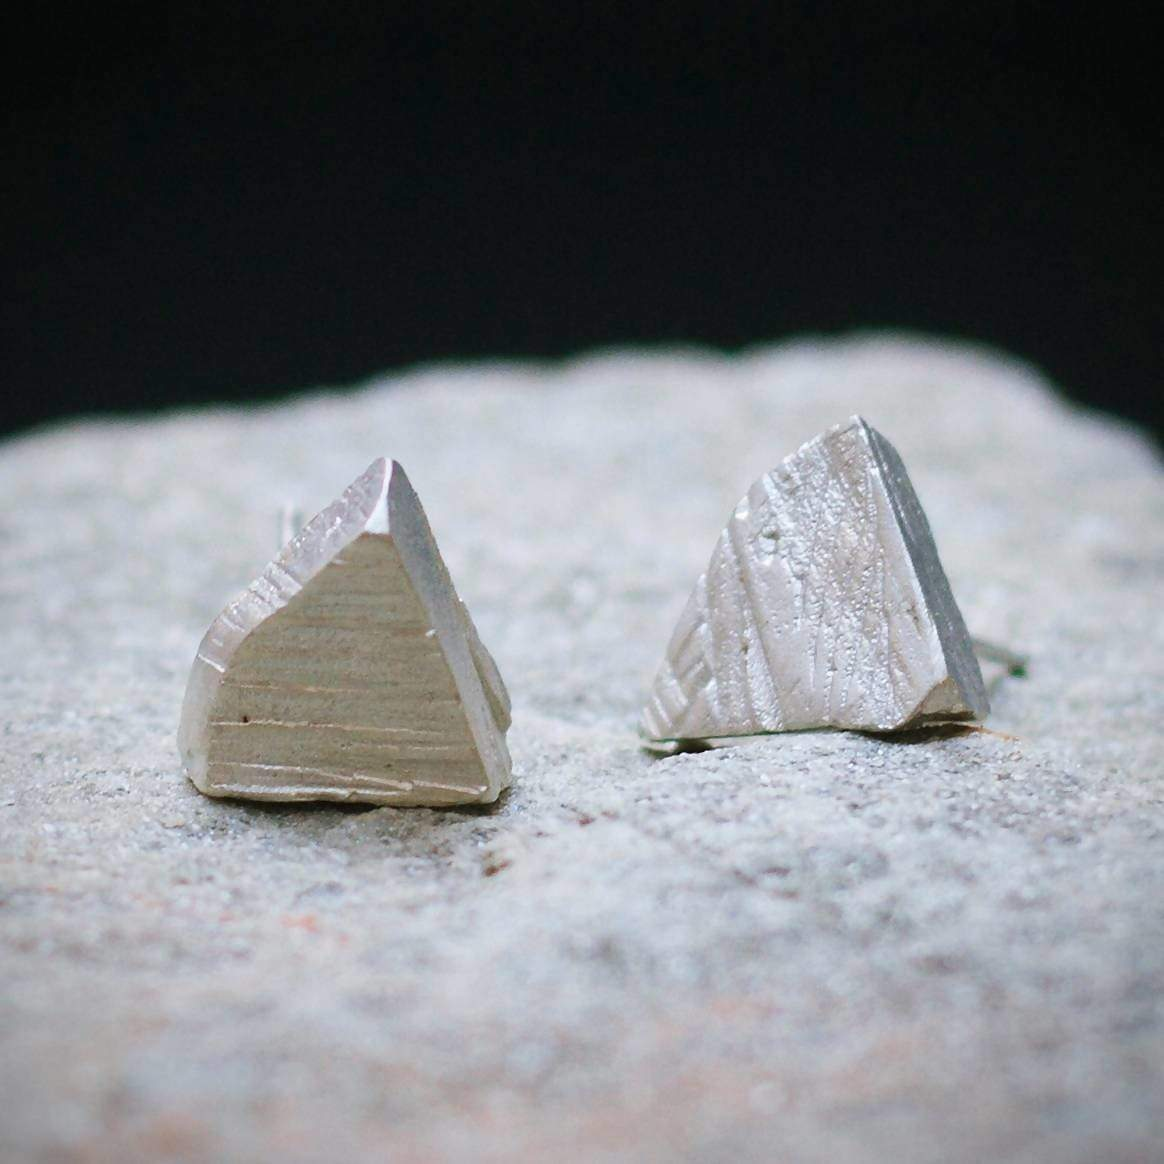 Earrings ALCHEMY post earrings organic ruff pyramid raw black triangle crude rustic studs gift idea september maria solorzano